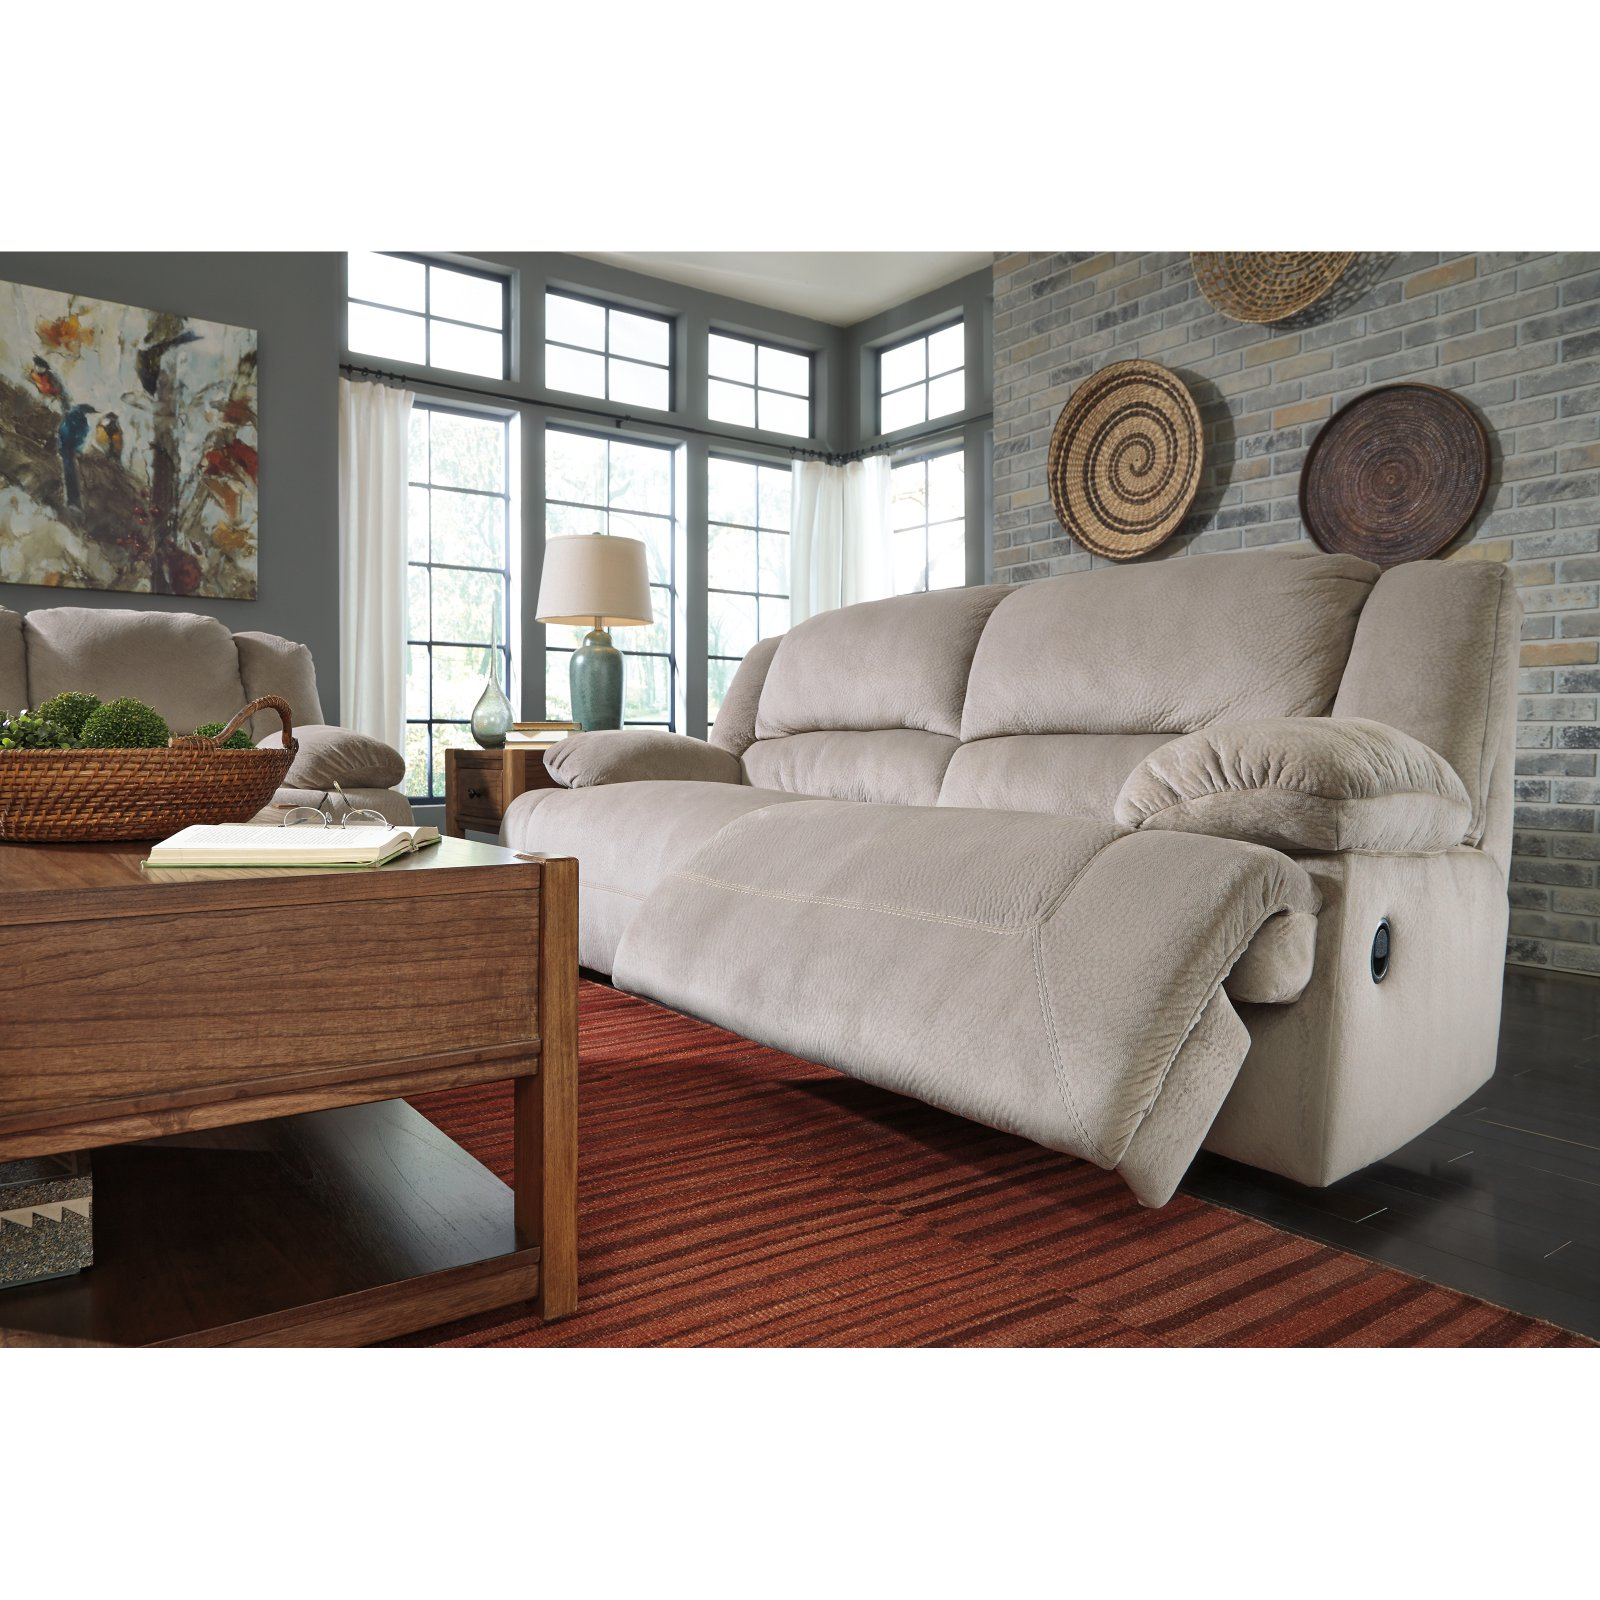 Signature Design by Ashley Toletta Reclining Sofa